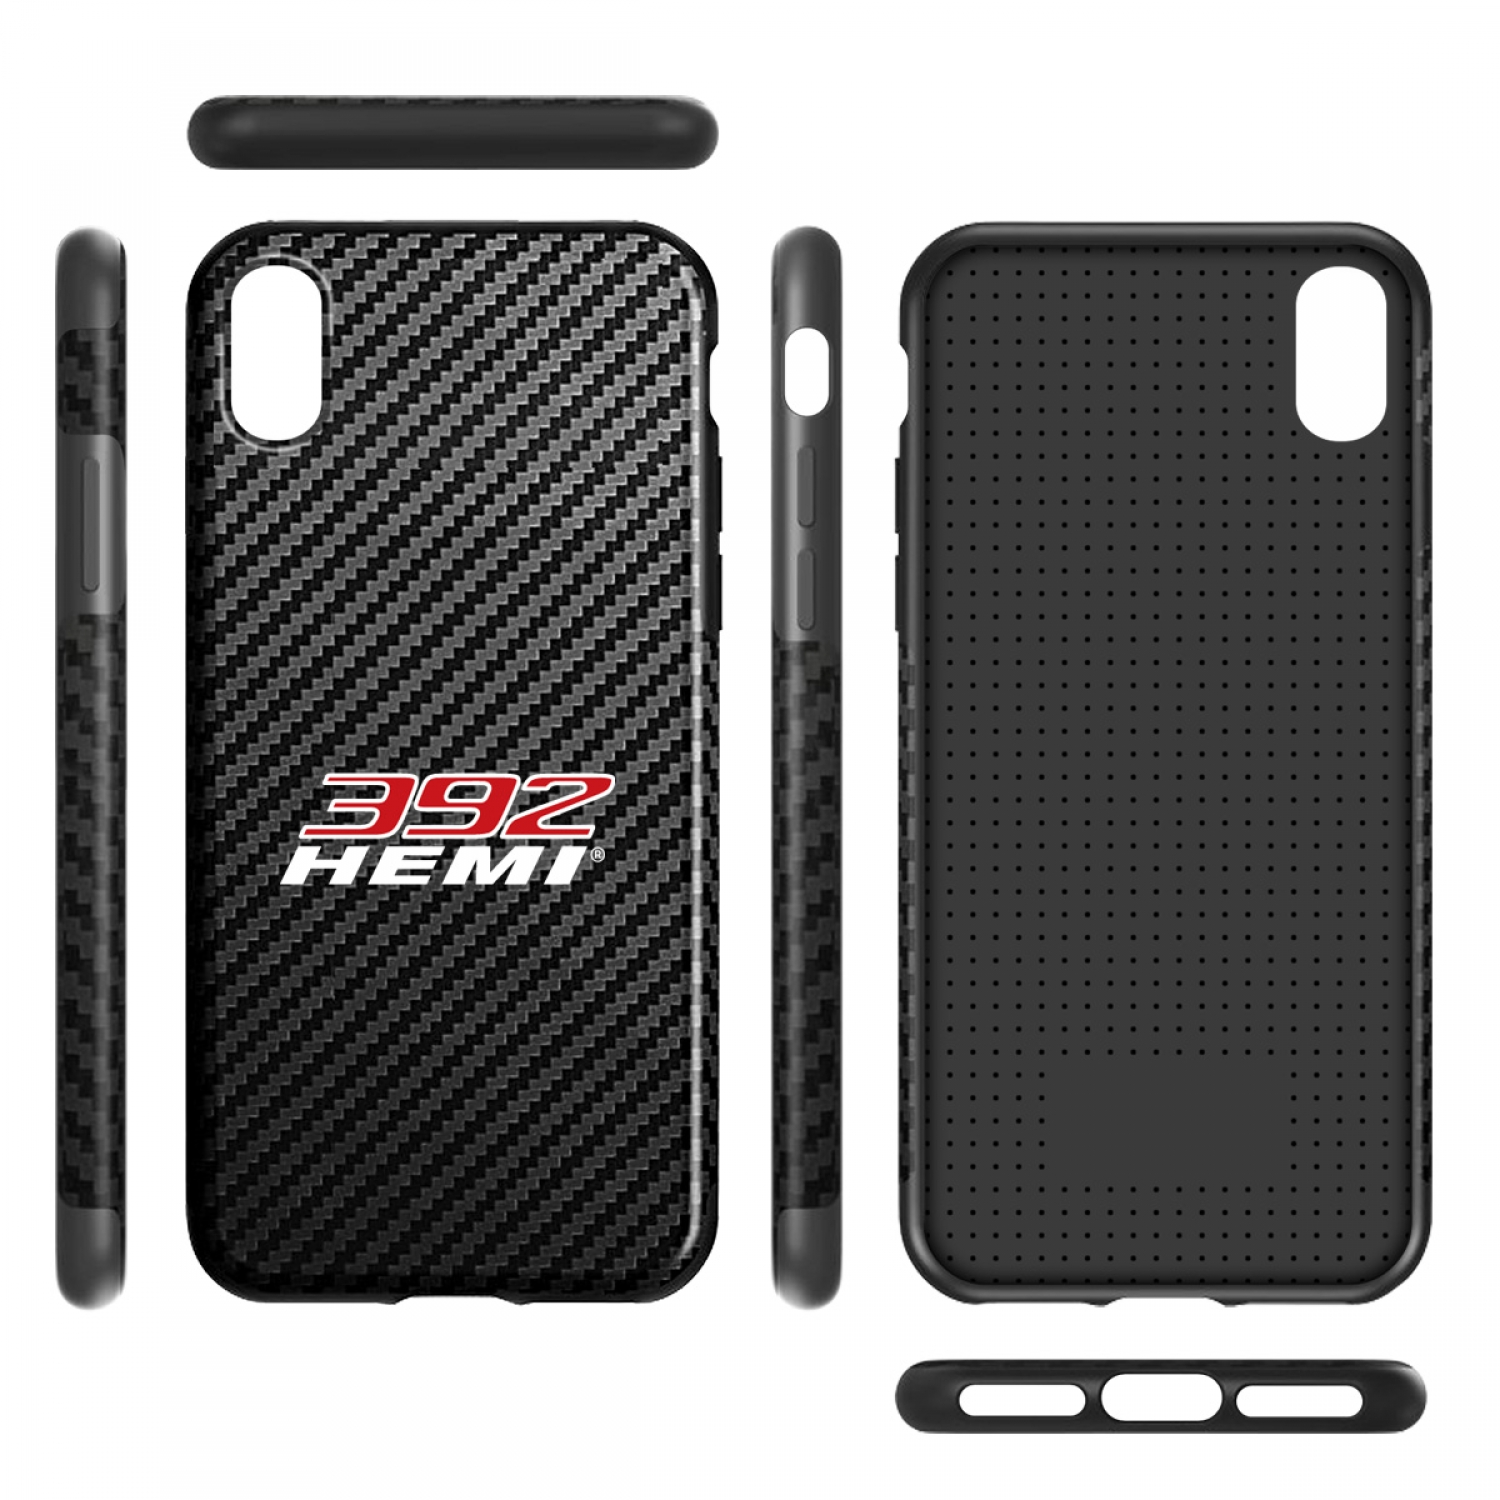 HEMI 392 HP iPhone X Black Carbon Fiber Texture Leather TPU Shockproof Cell Phone Case